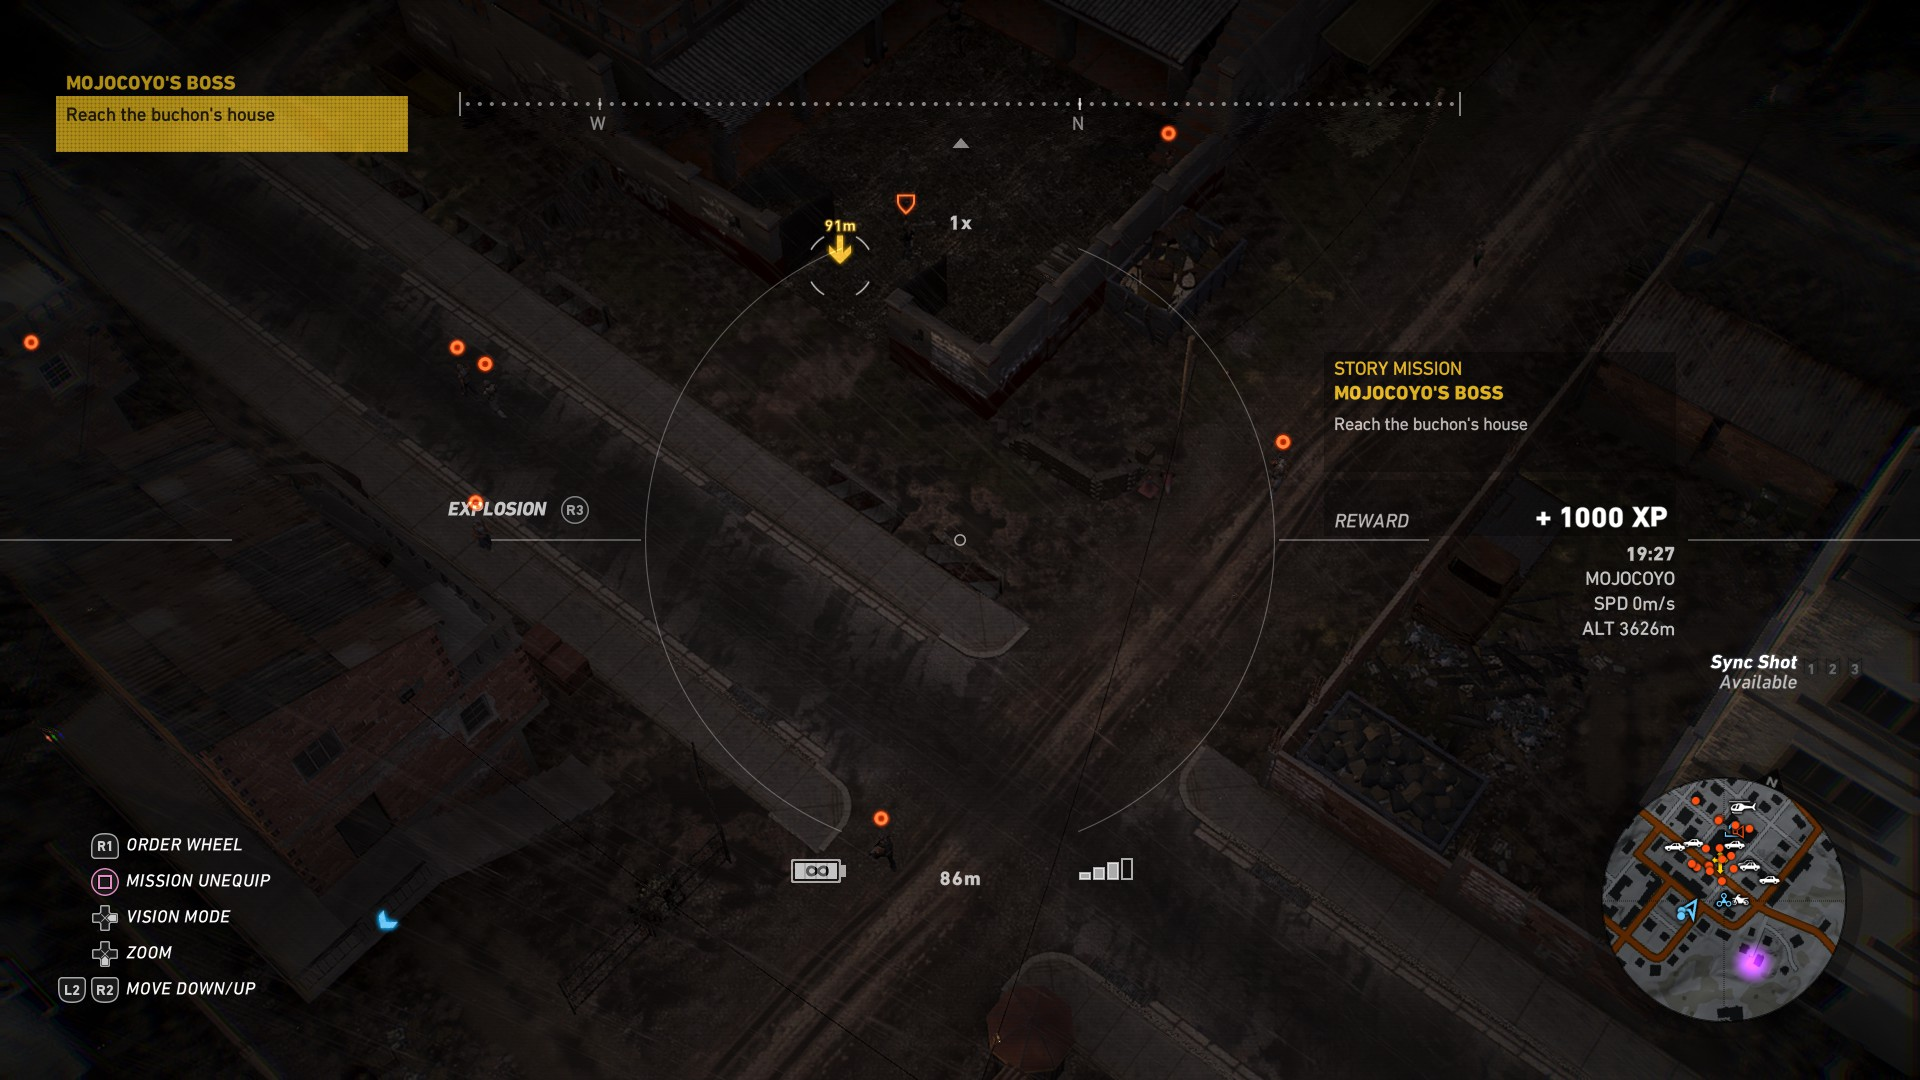 Spot enemies with you Drone, and don't stop until there are no more color blotches on the map, just dots.